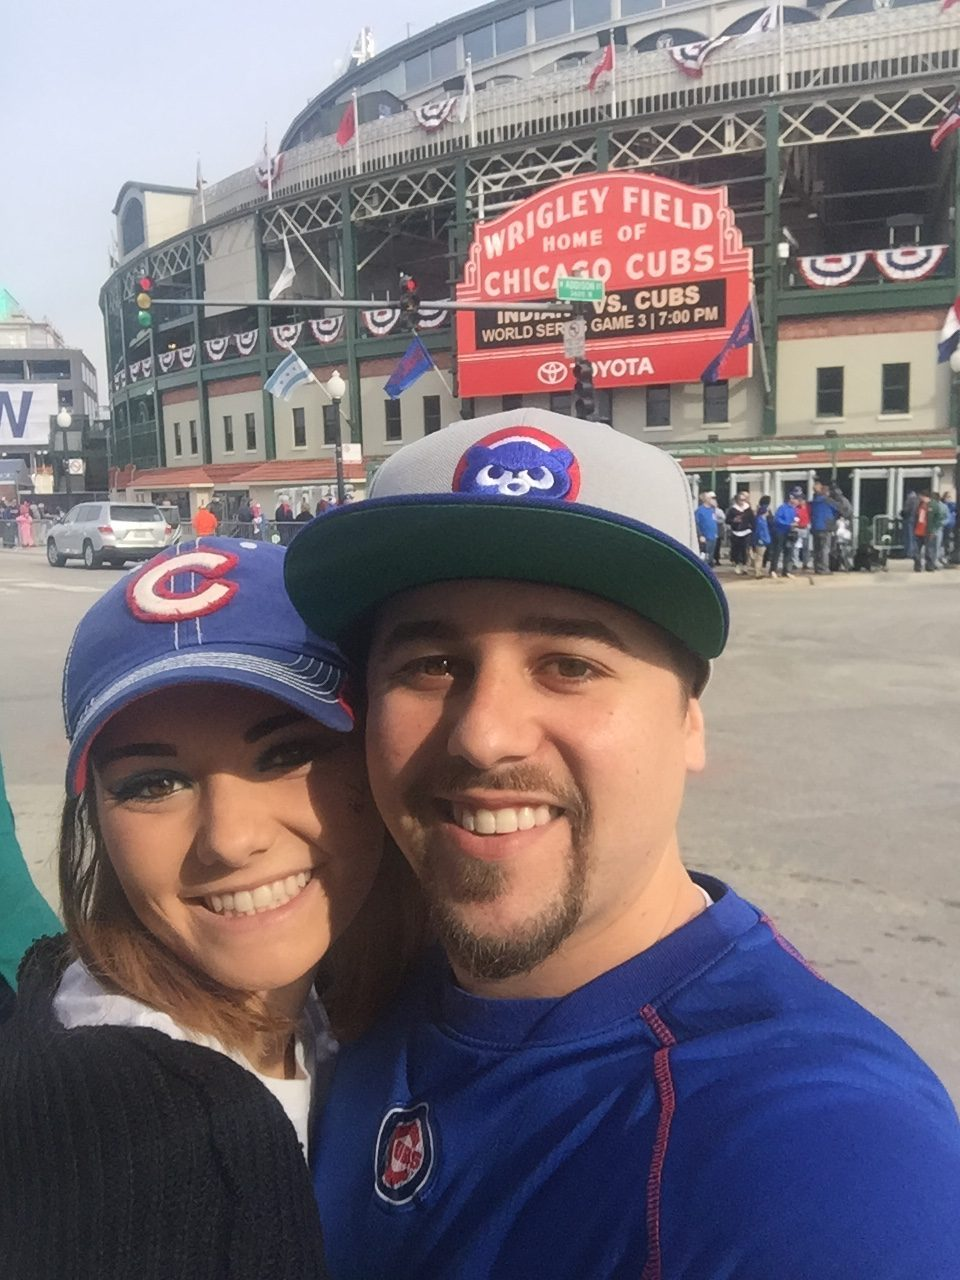 How Our Love Helped The Cubs Win The 2016 World Series